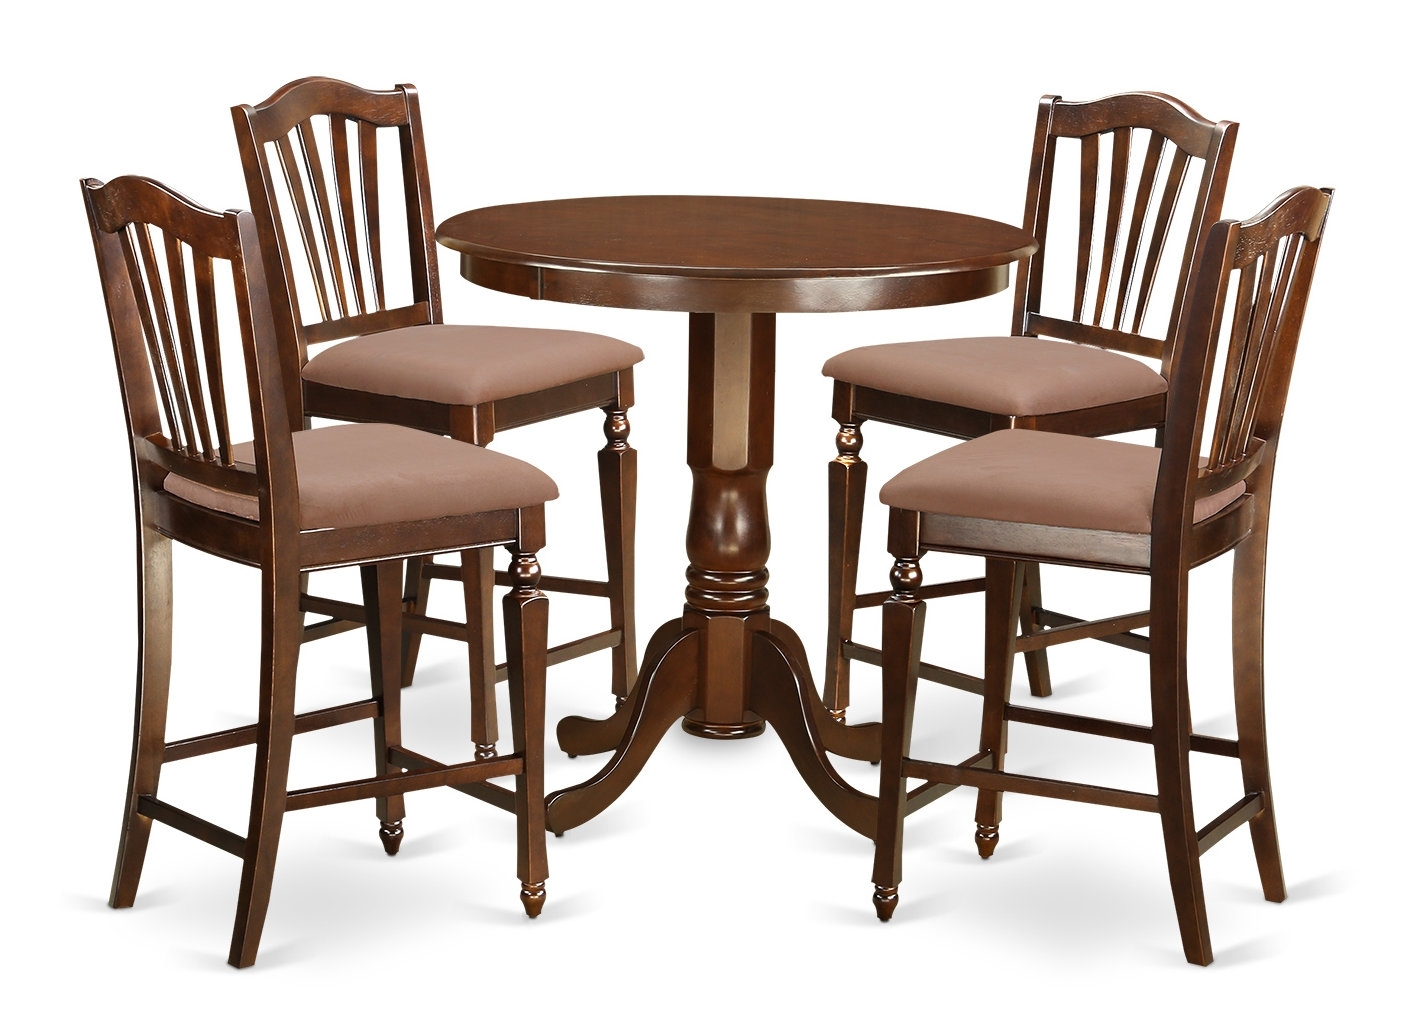 East West Jackson 5 Piece Counter Height Pub Table Set | Wayfair With Regard To Most Current Jaxon 5 Piece Extension Counter Sets With Fabric Stools (Photo 7 of 20)